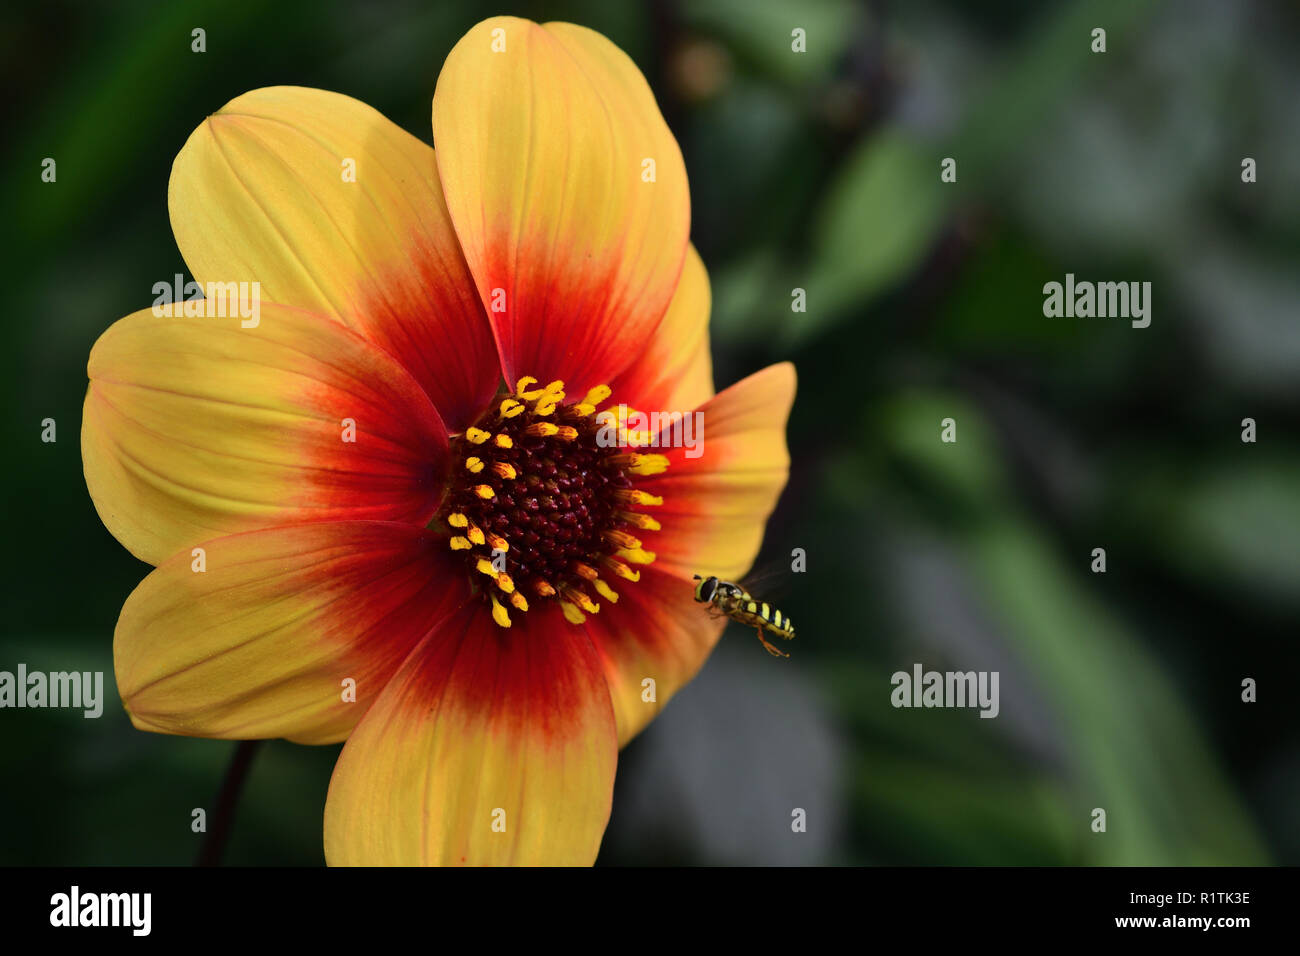 Close up of a dahlia moonfire flower in bloom - Stock Image